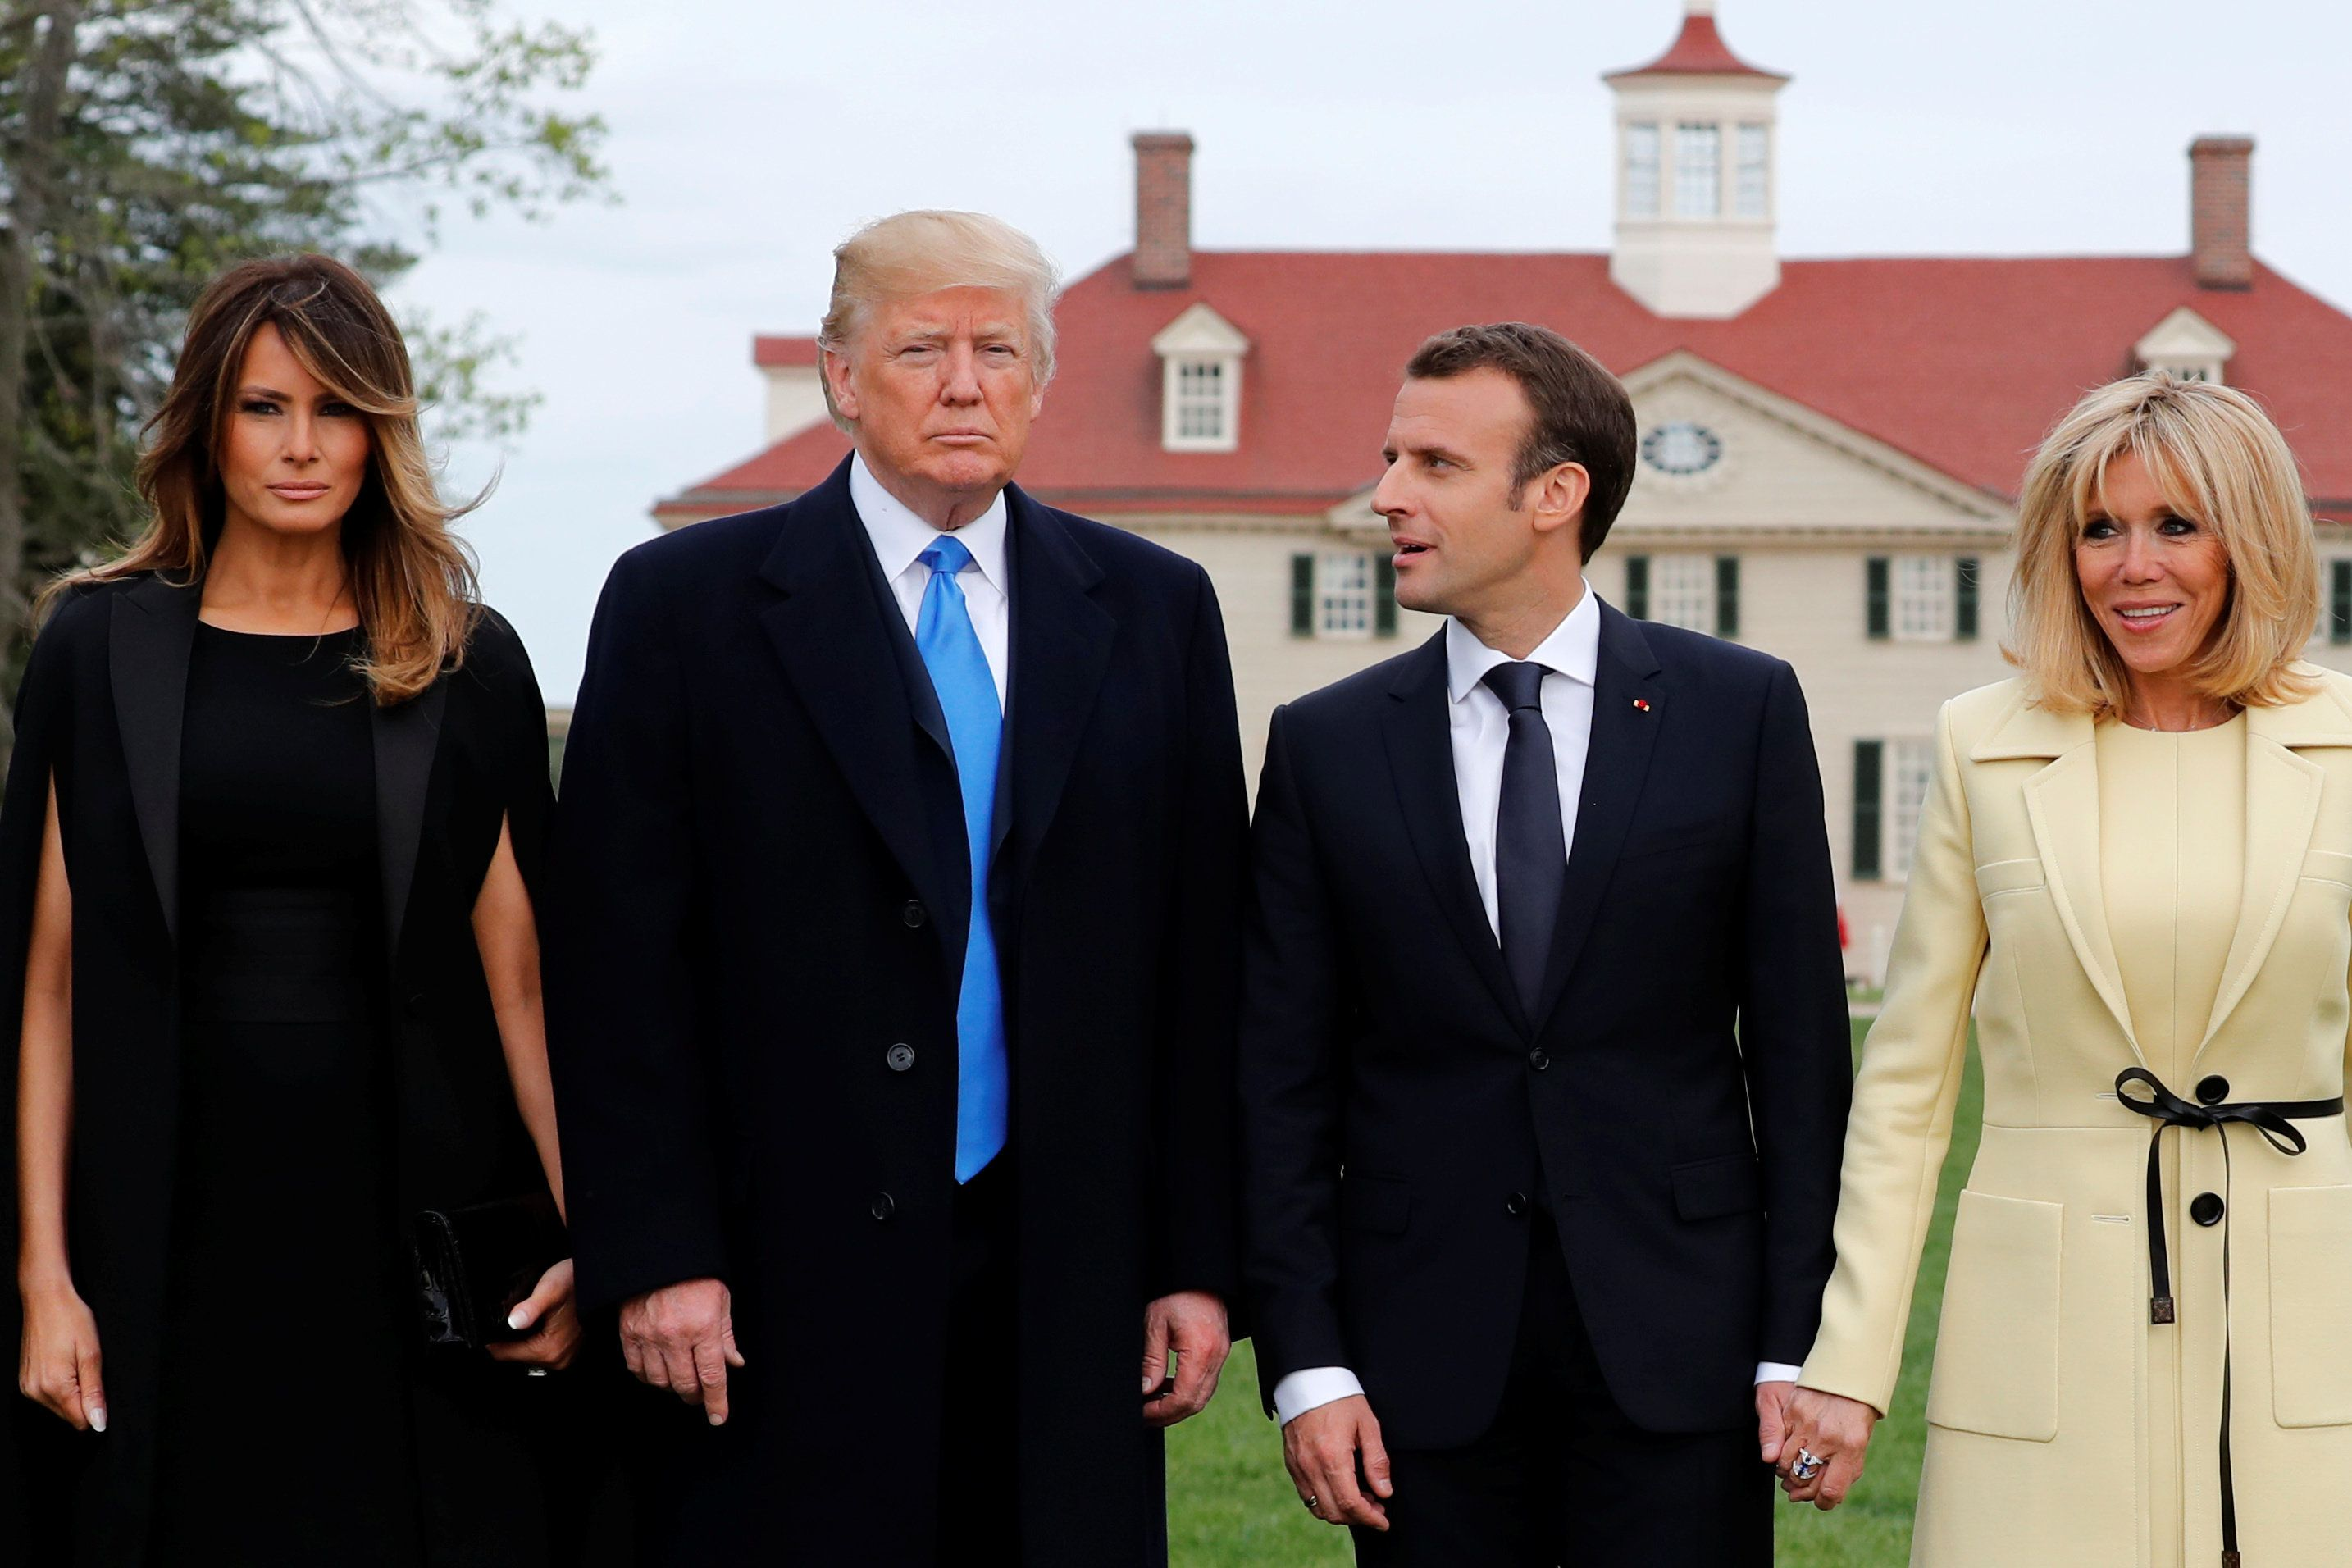 U.S. President Donald Trump and first lady Melania Trump and French President Emmanuel Macron and Brigitte Macron have their picture taken on a visit to the estate of the first U.S. President George Washington in Mount Vernon, Virginia outside Washington, U.S., April 23, 2018. REUTERS/Jonathan Ernst